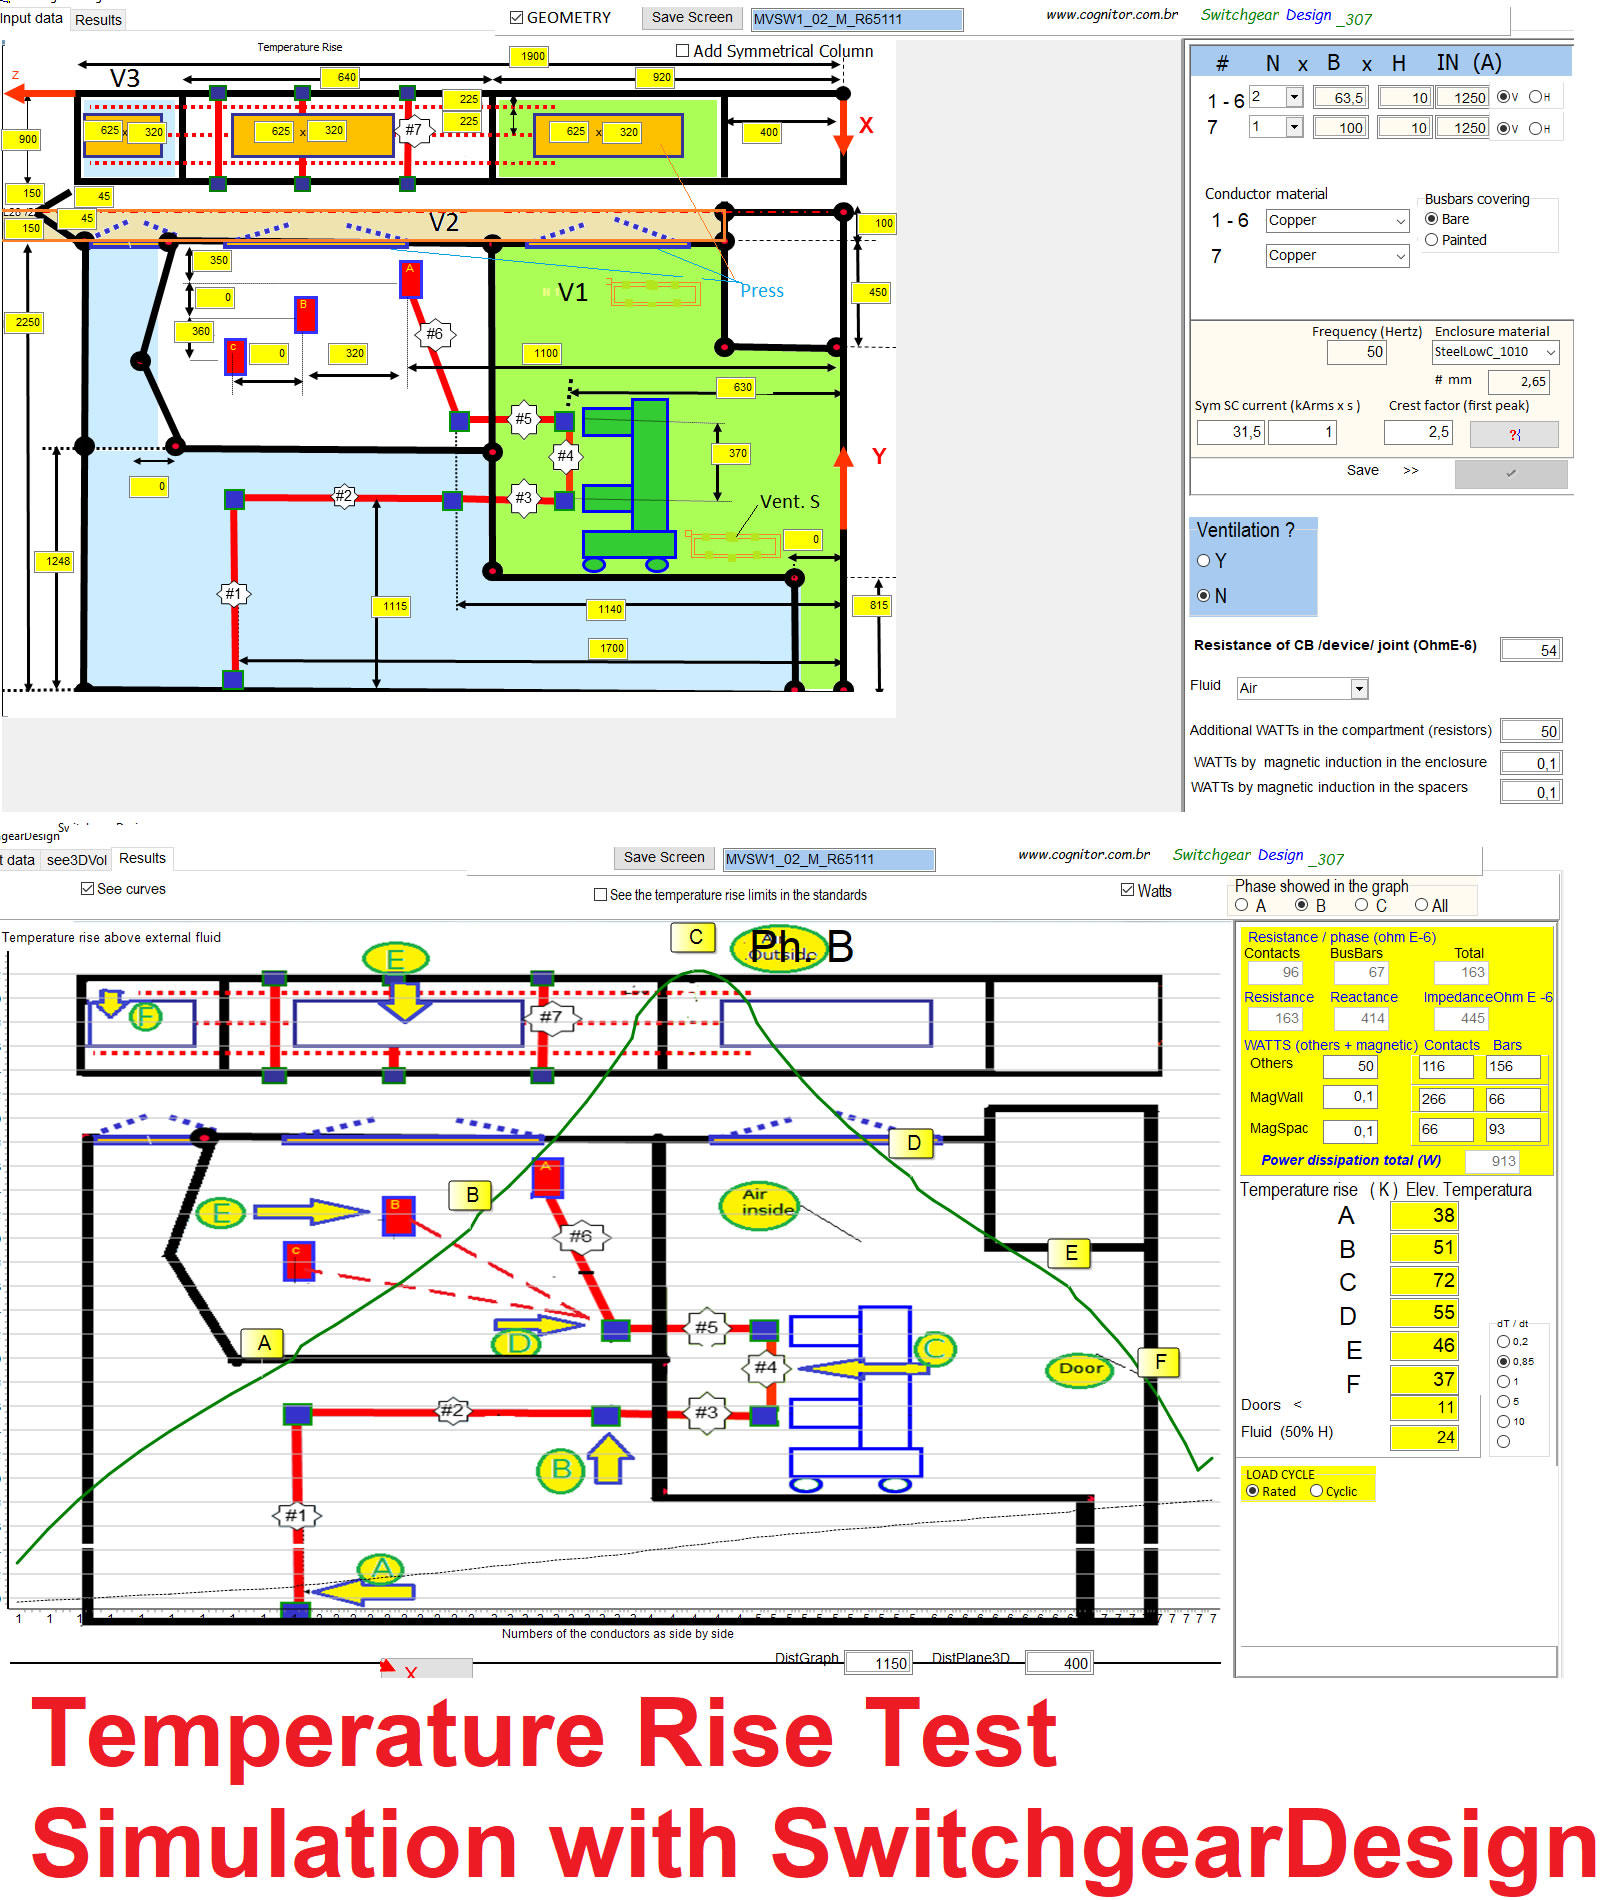 Temperature Rise Test Simulation with SwitchgearDesign software developed by Sergio Feitoza